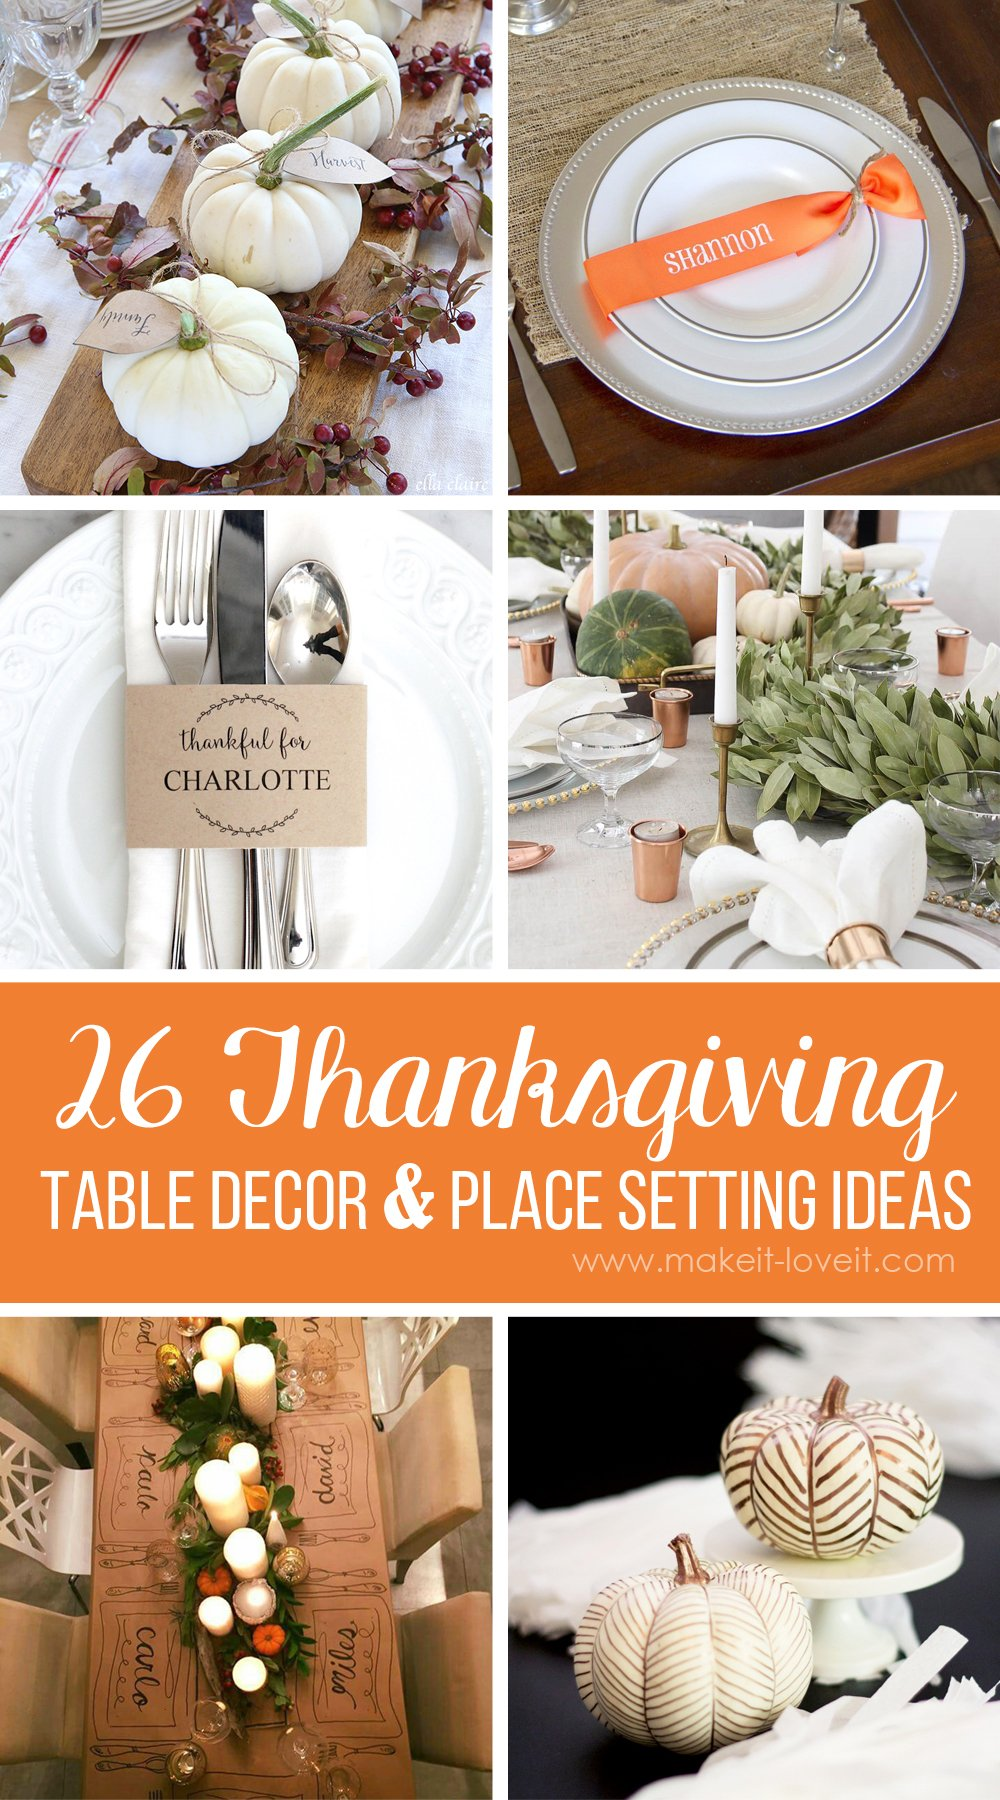 26 Lovely Thanksgiving Table Decor and Place Setting Ideas